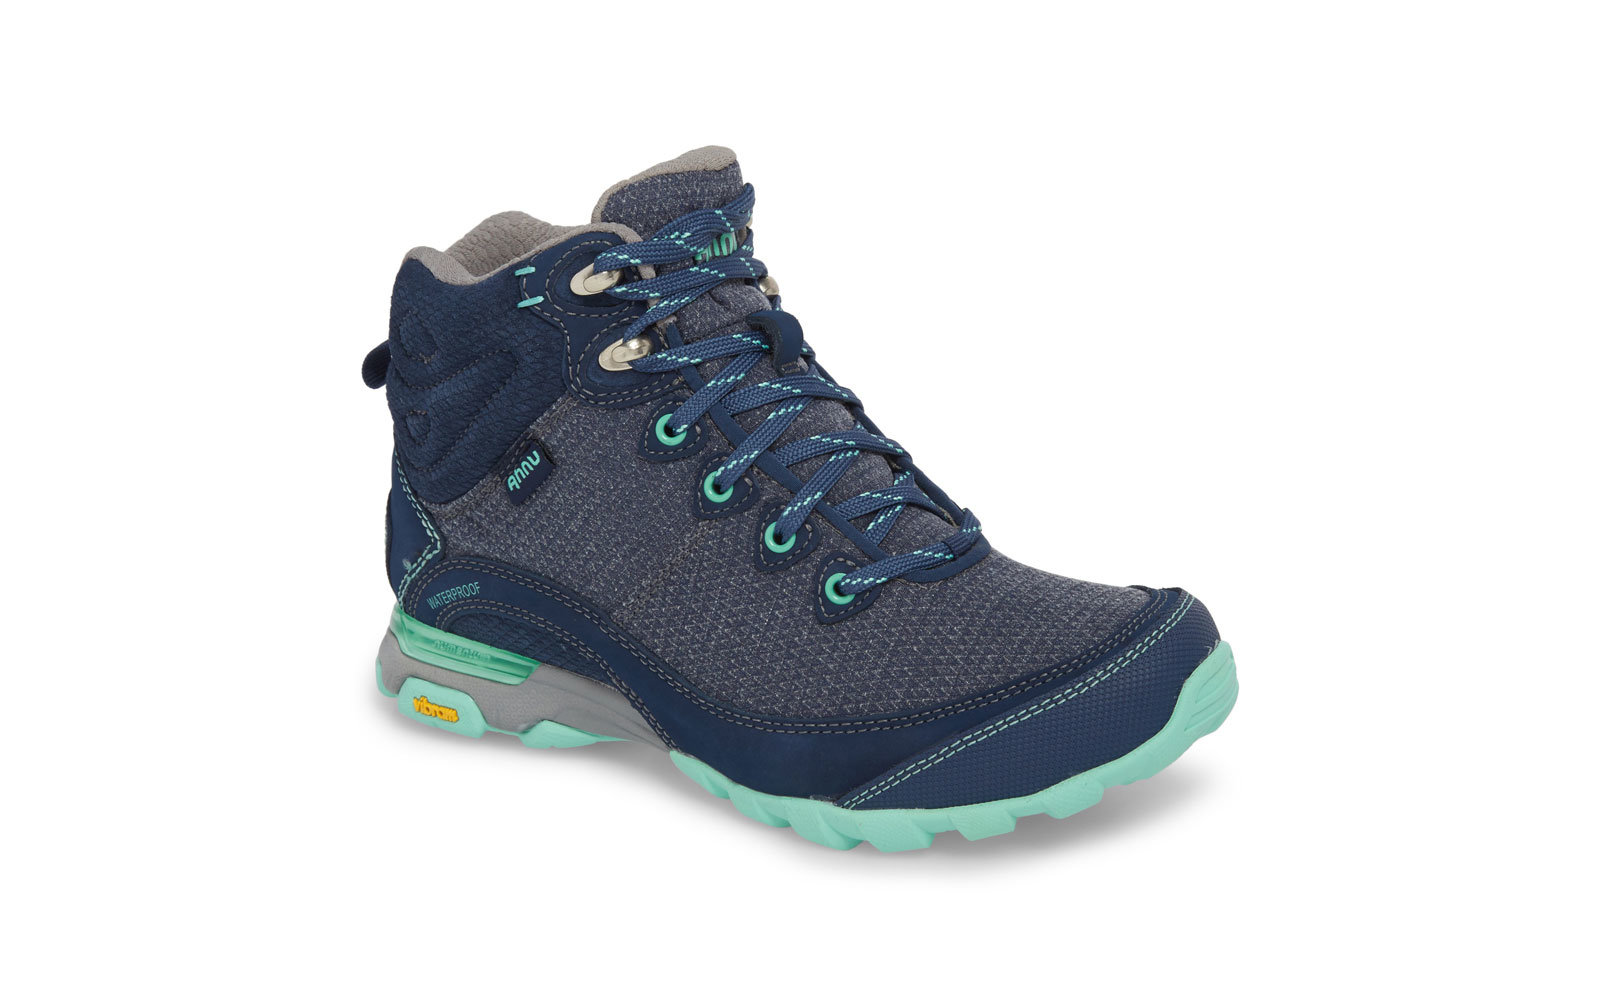 Look - Boots Hiking for women cute video